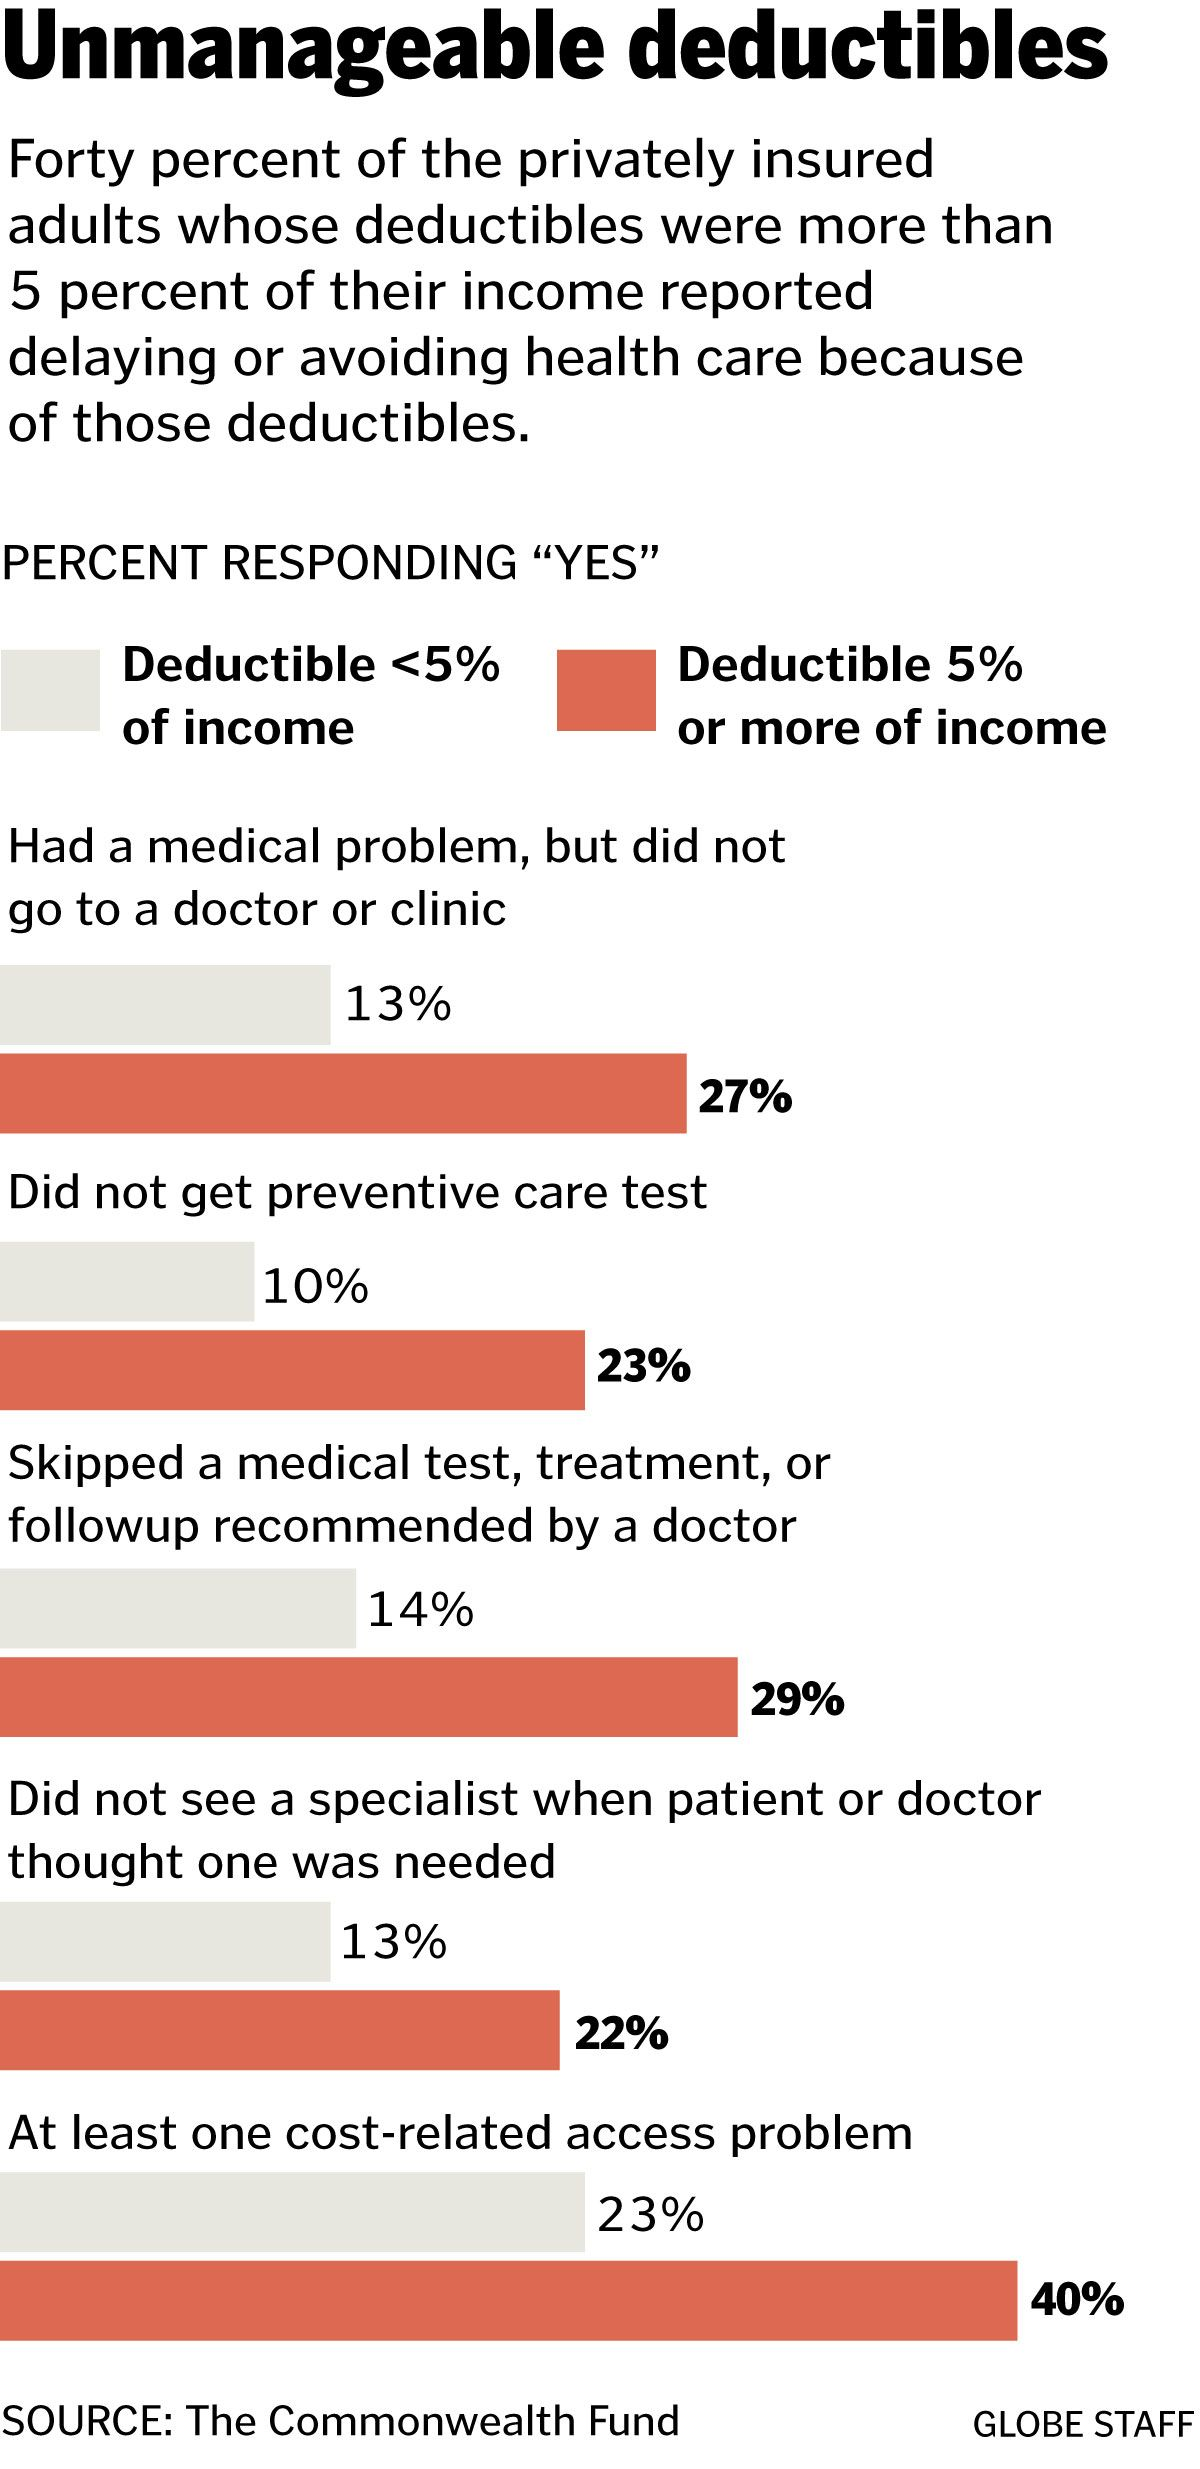 Outofpocket costs put health care out of reach The